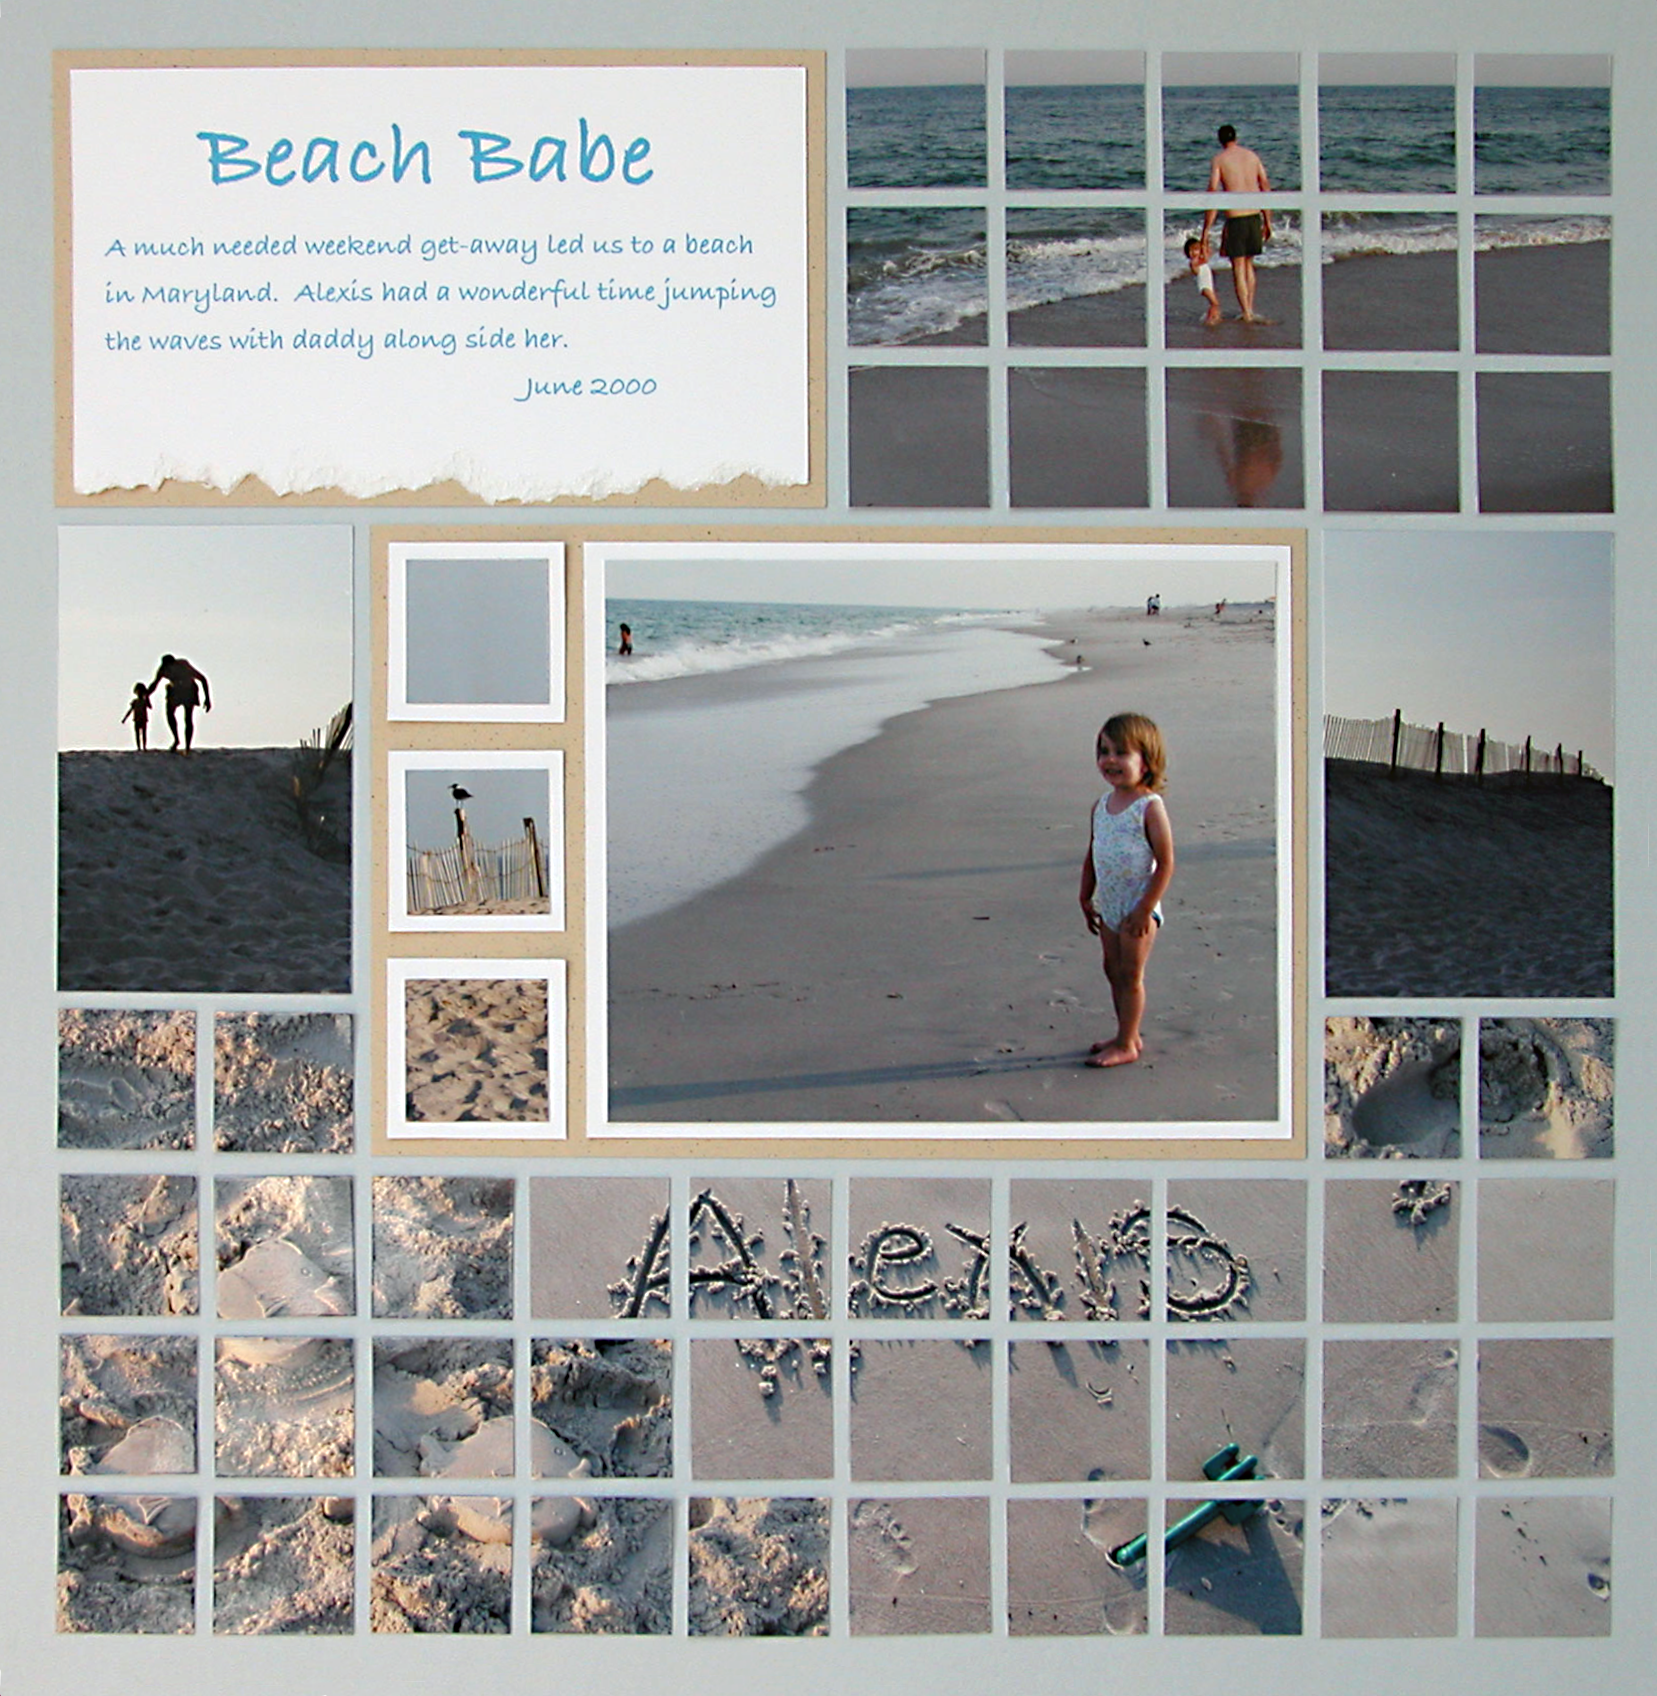 scrapbook travel Pages Graphic 45 is part of Graphic  Collections Papers Stamps More Scrapbook Com - Next time you create beach scrapbook layout, use photos of the sand for a unique scrapbook embellishment  Get more photo ideas for scrapbooking by clicking the image